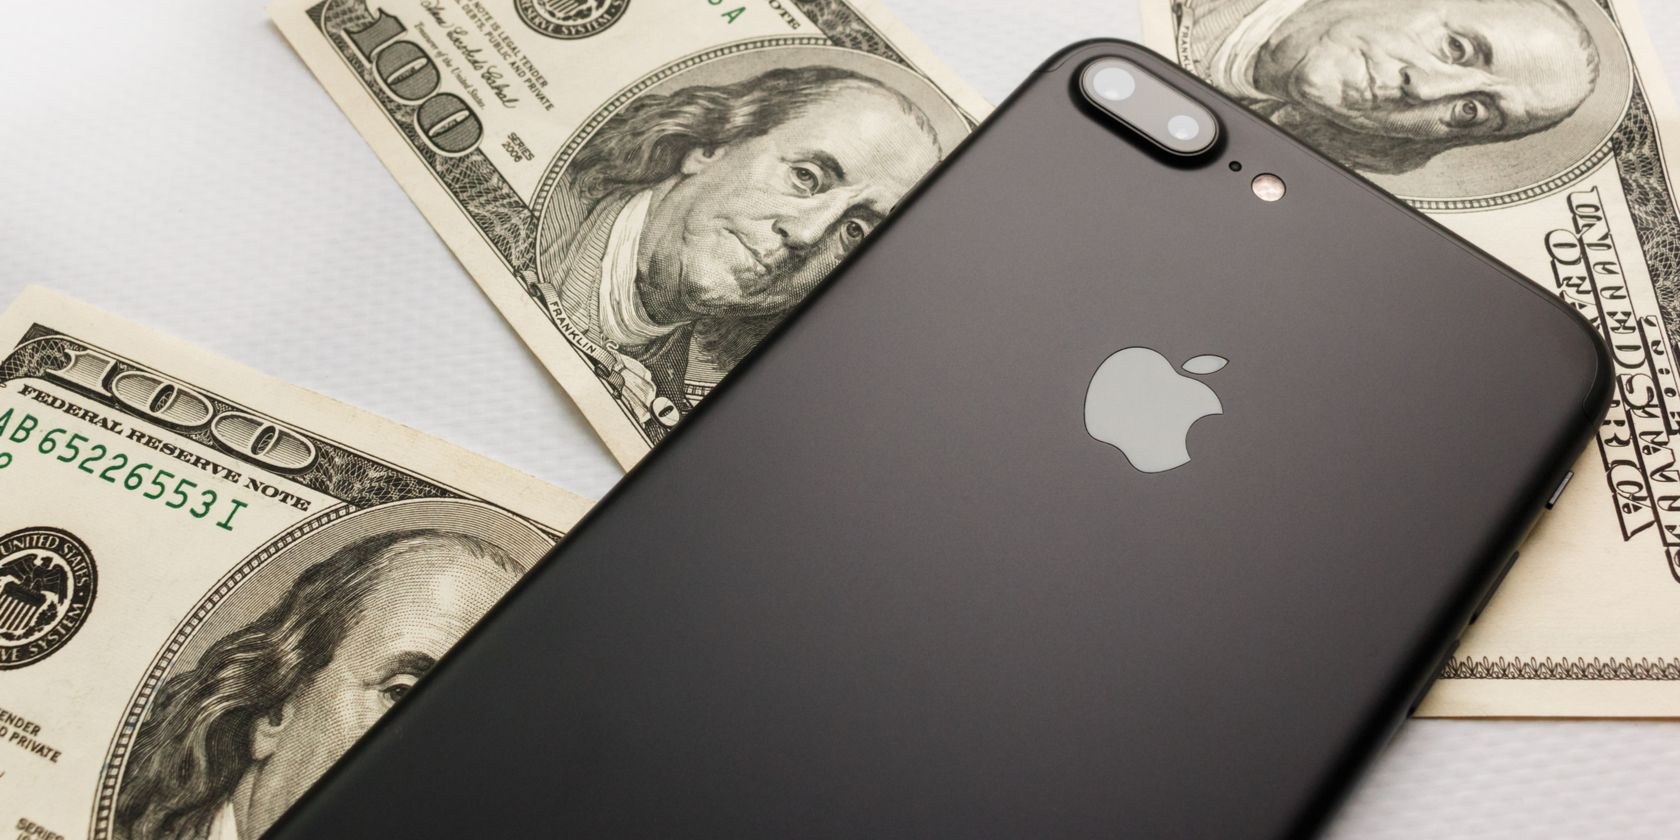 6 Ways to Save Money When Buying an iPhone